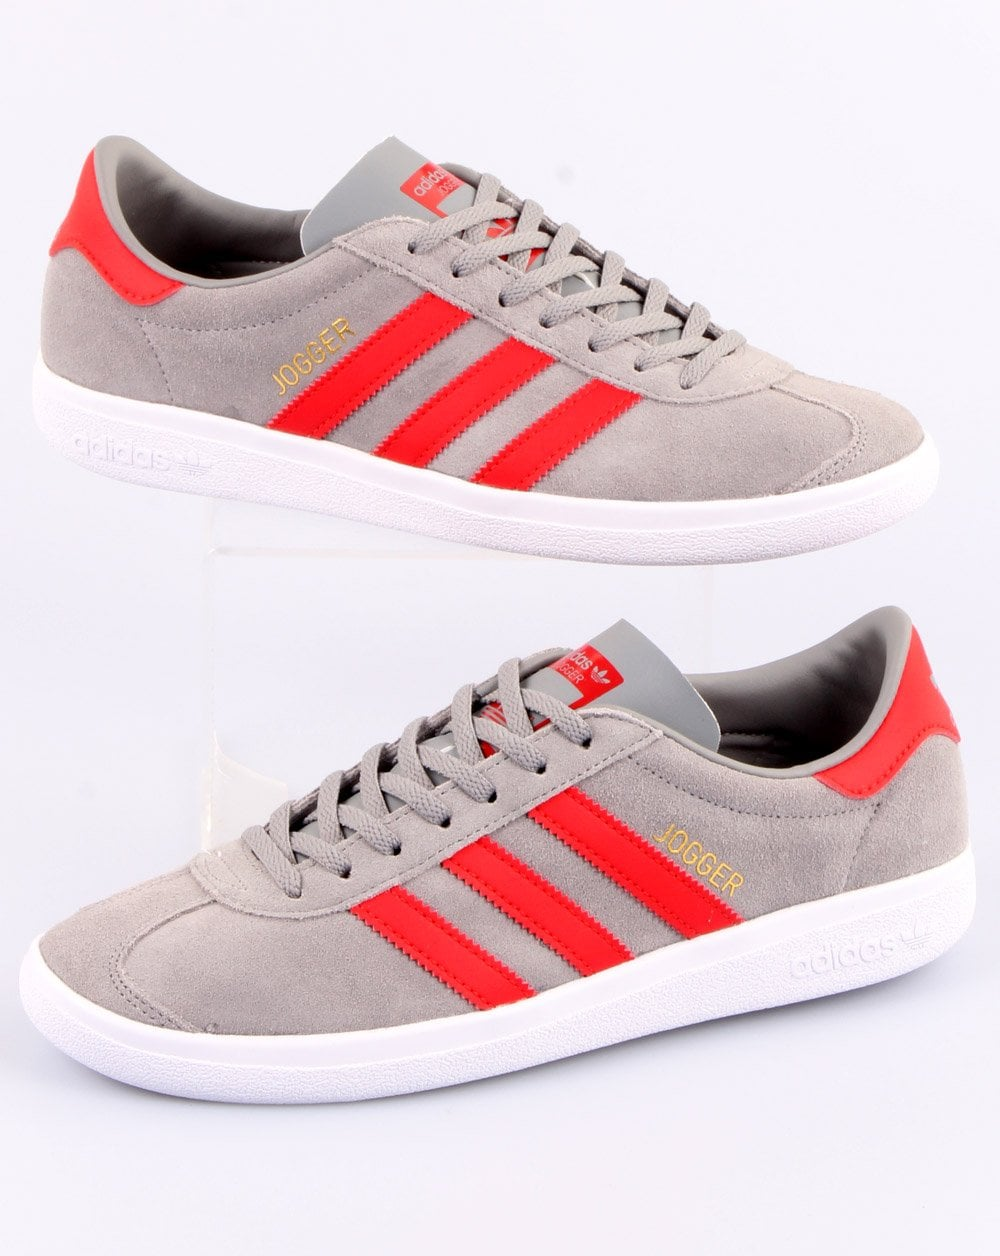 Adidas Jogger Trainers Grey/Red